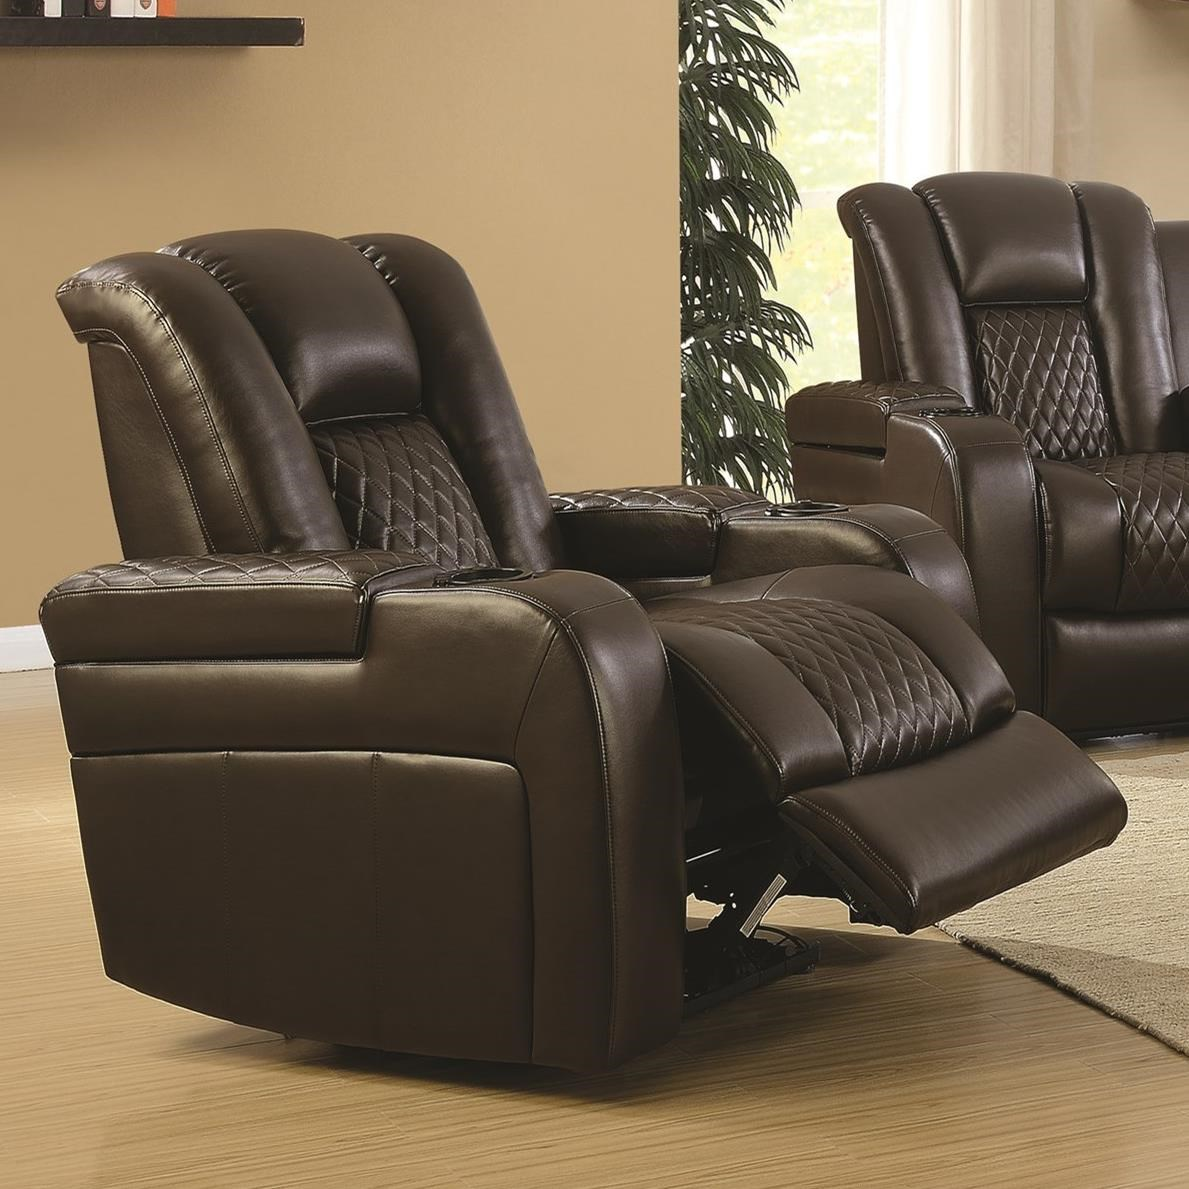 Delangelo Power Recliner by Coaster at Northeast Factory Direct